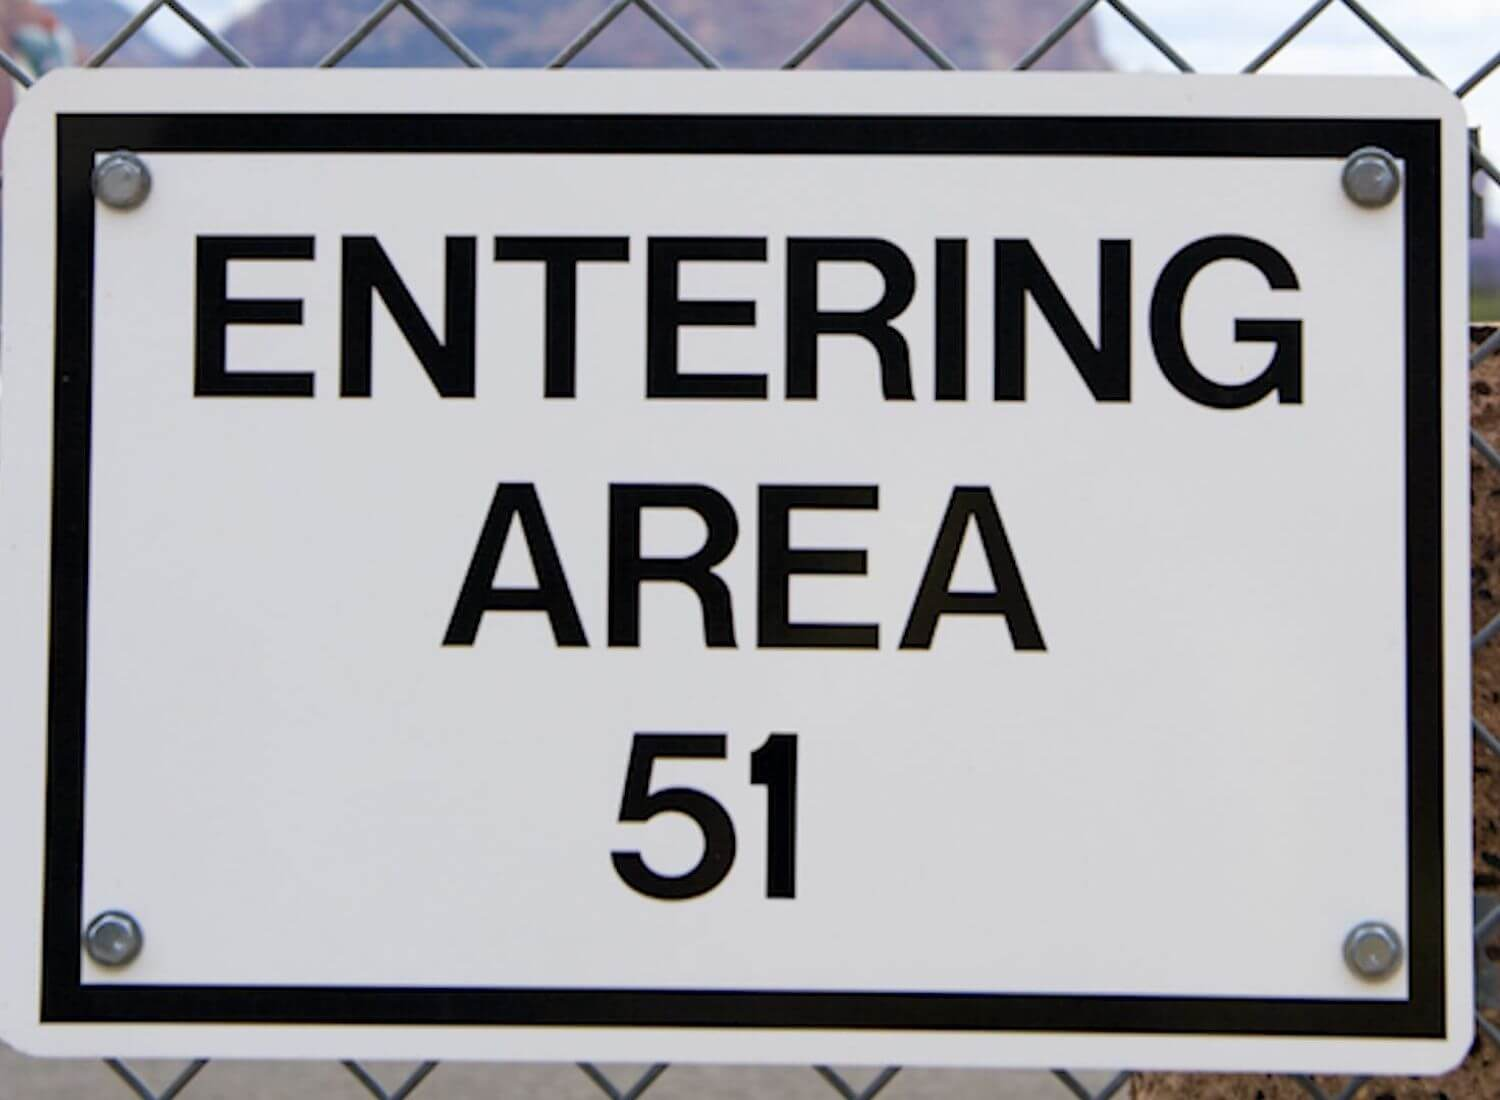 Top 15 Facts About Area 51 We Know So Far